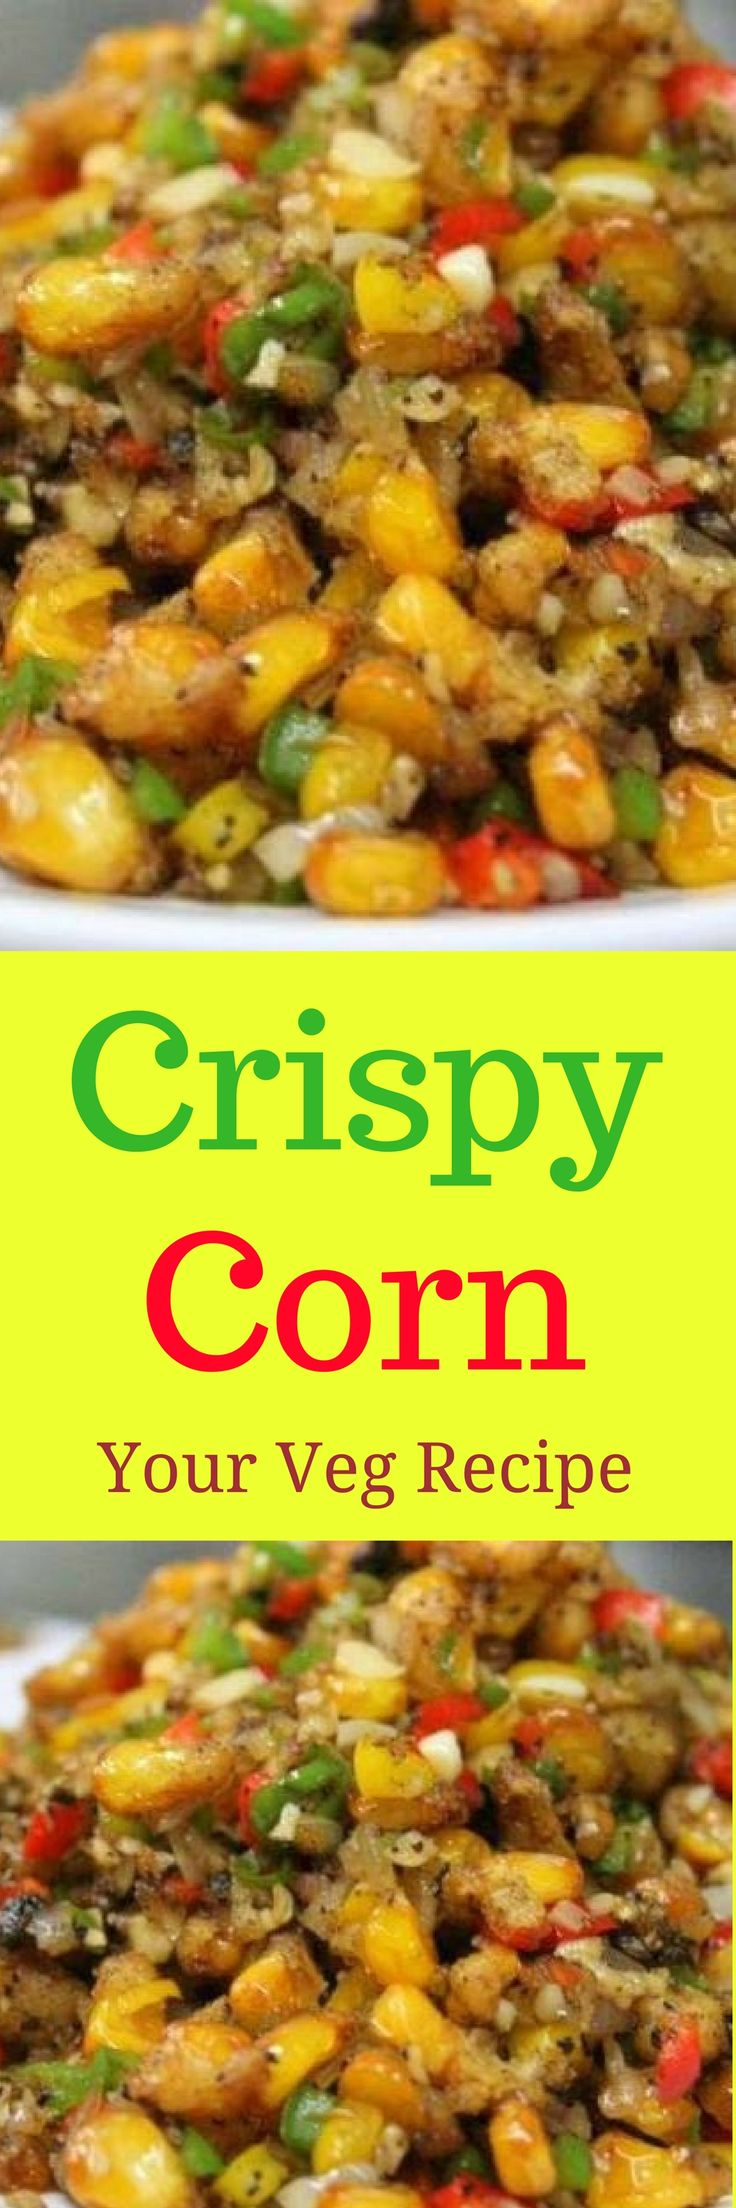 For all the food lovers, indulge in this simple and tasteful Crispy Corn recipe. Crunchy corn topped with some garlic, onions and sauces is the best of one could possibly desire for. If you crave for tasty food, if you don't mind having something fried once in a while or if you love fried corn, we are sure you cannot miss this.